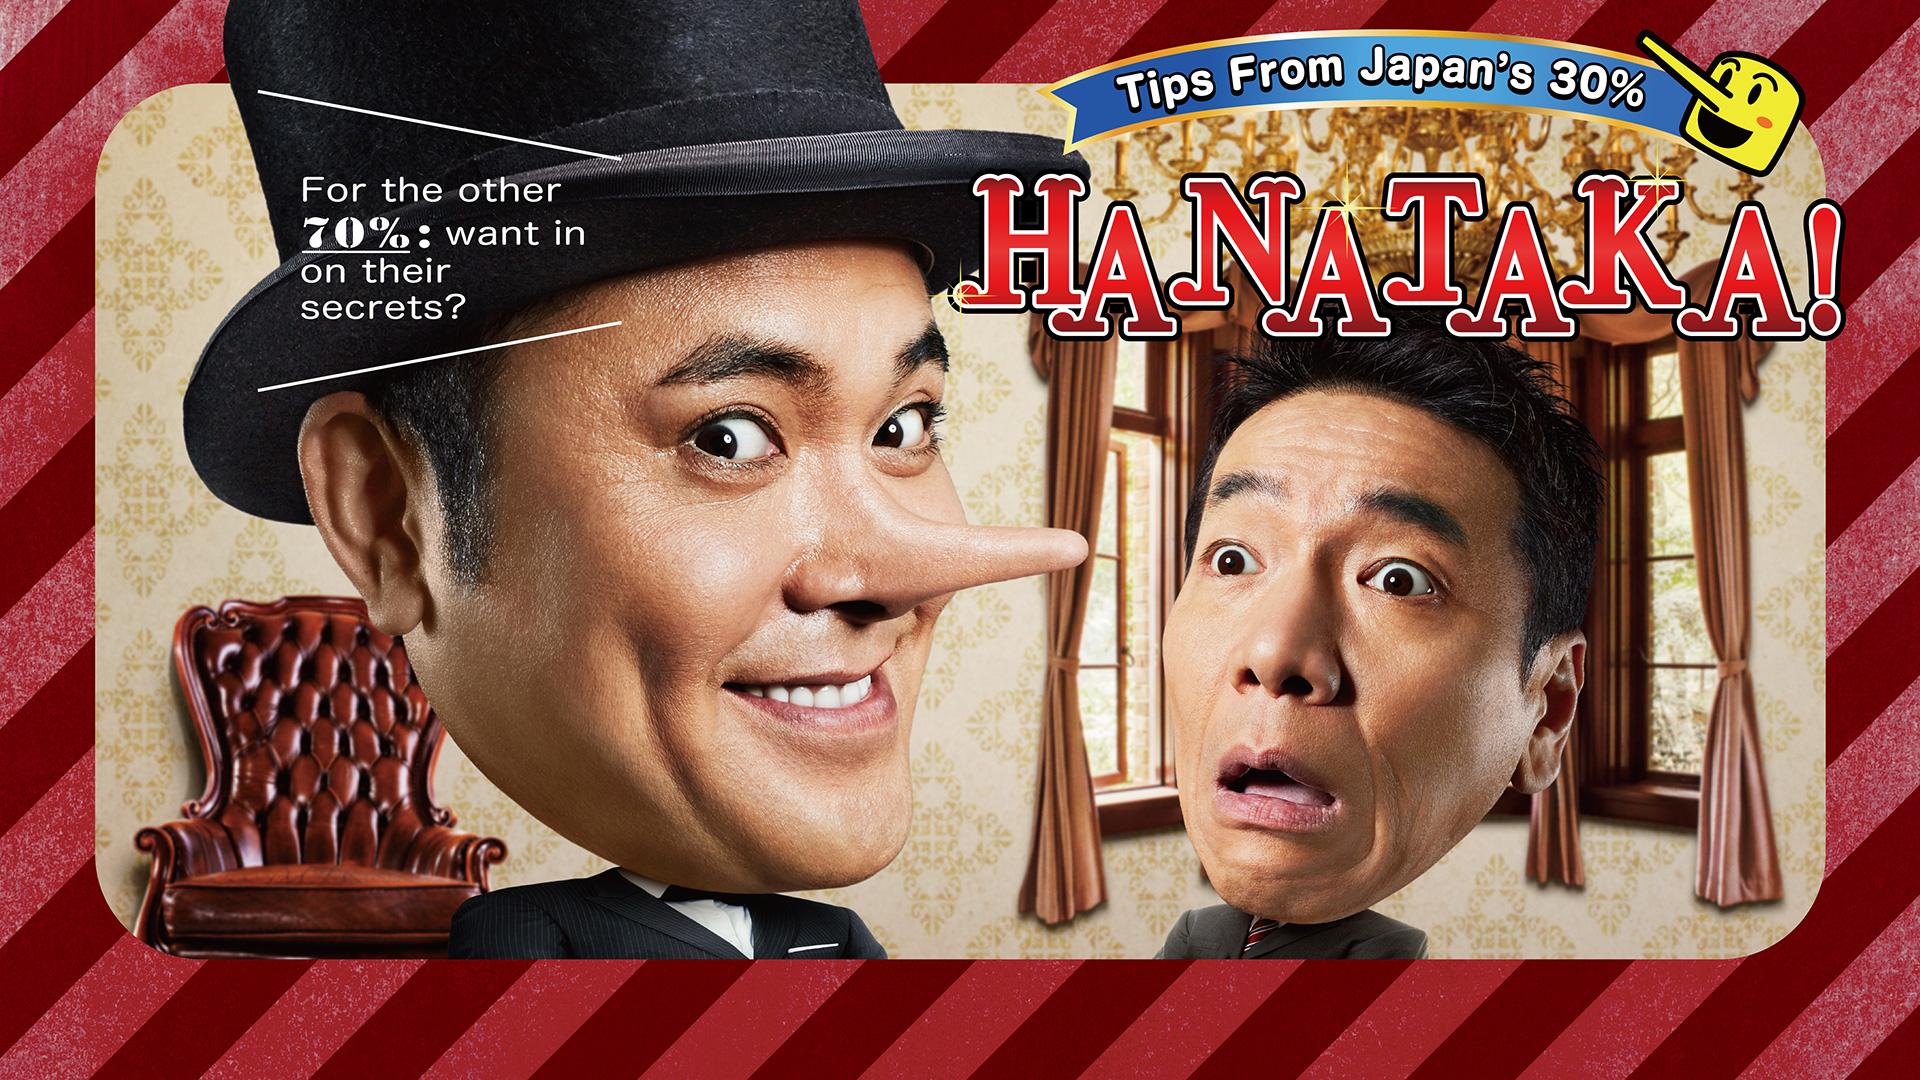 HANATAKA! –Tips From Japan's 30% Special